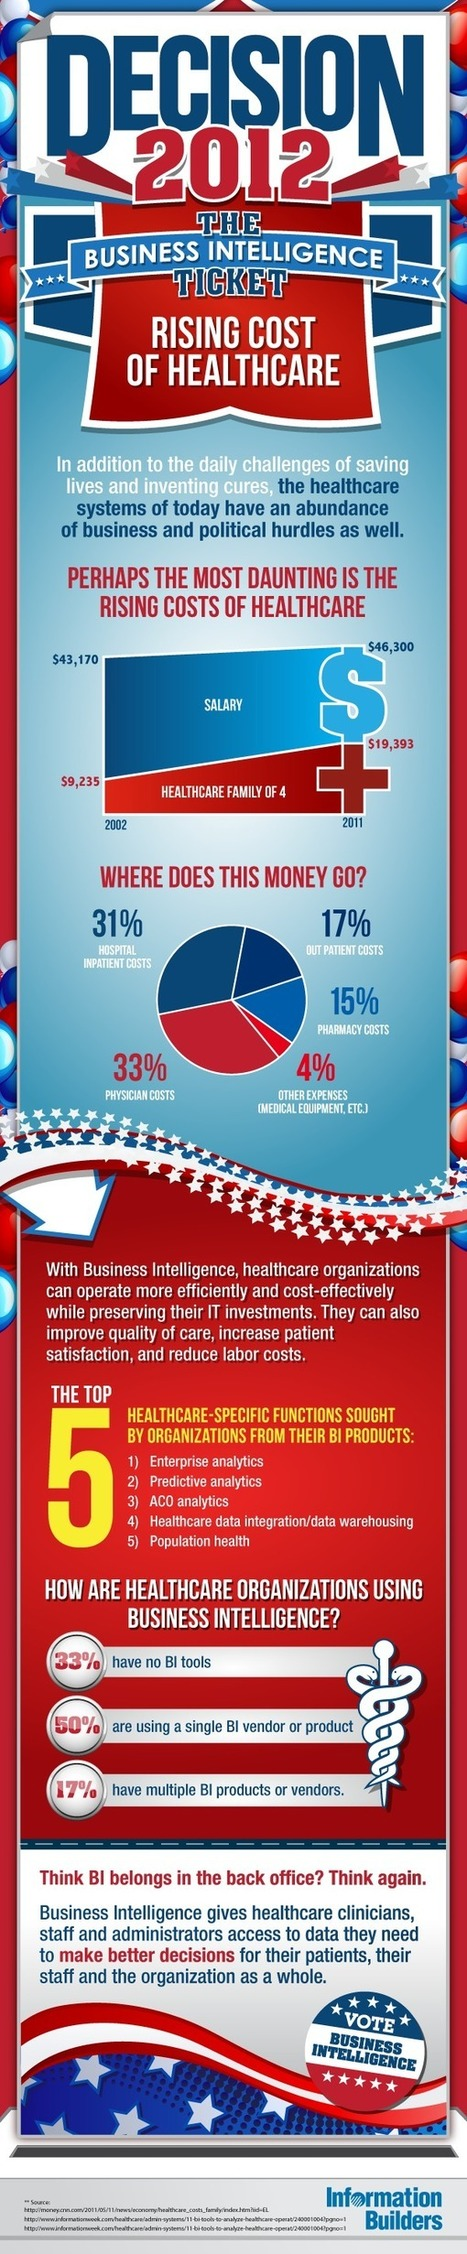 The 20 Most Insightful Healthcare Technology Infographics of 2012 | generics | Scoop.it